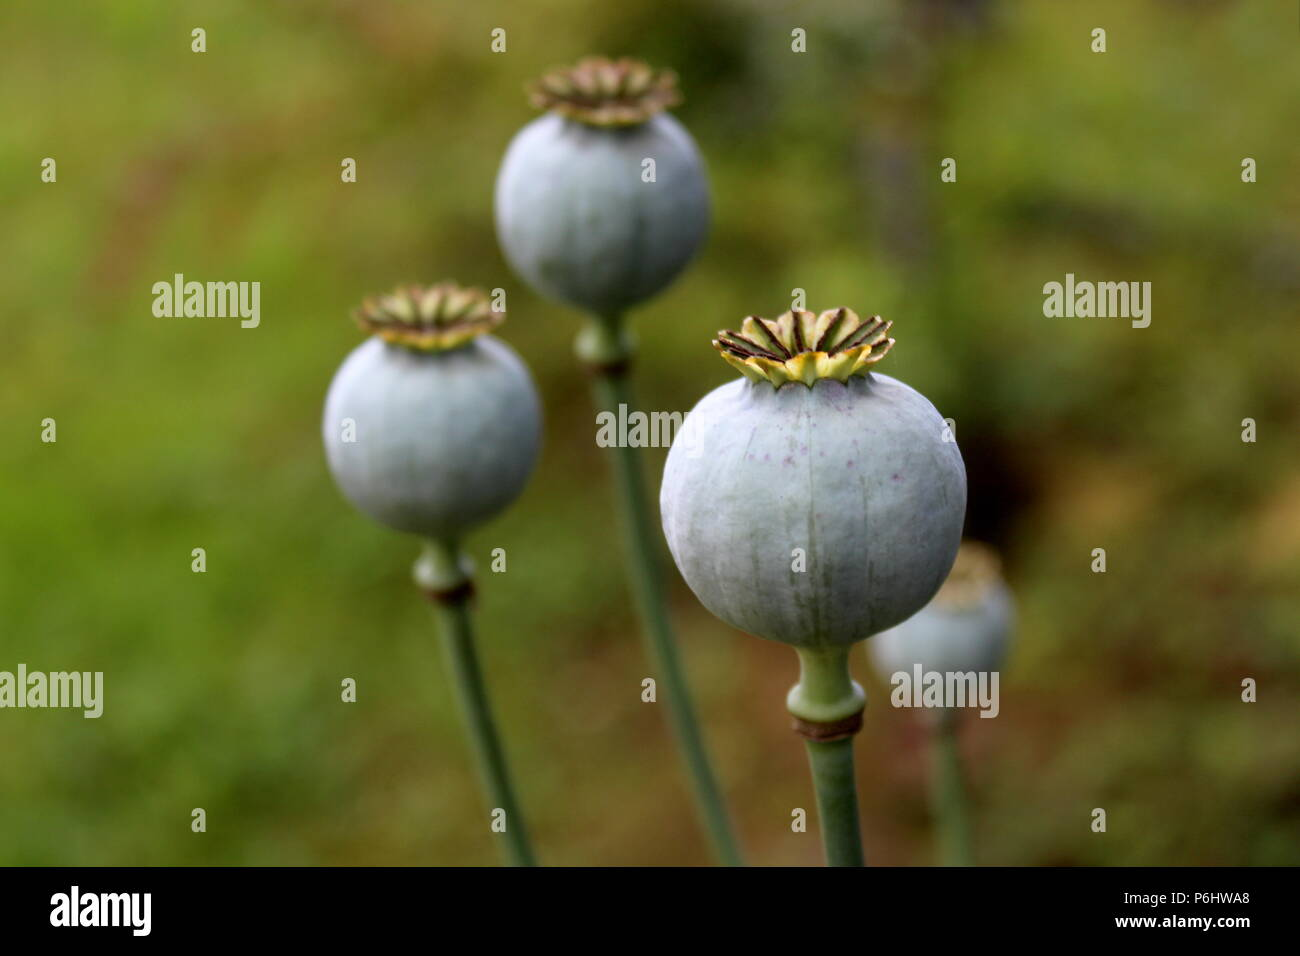 Opium poppy or Papaver somniferum or Breadseed poppy flower buds in local garden on dark green leaves background on warm sunny day - Stock Image